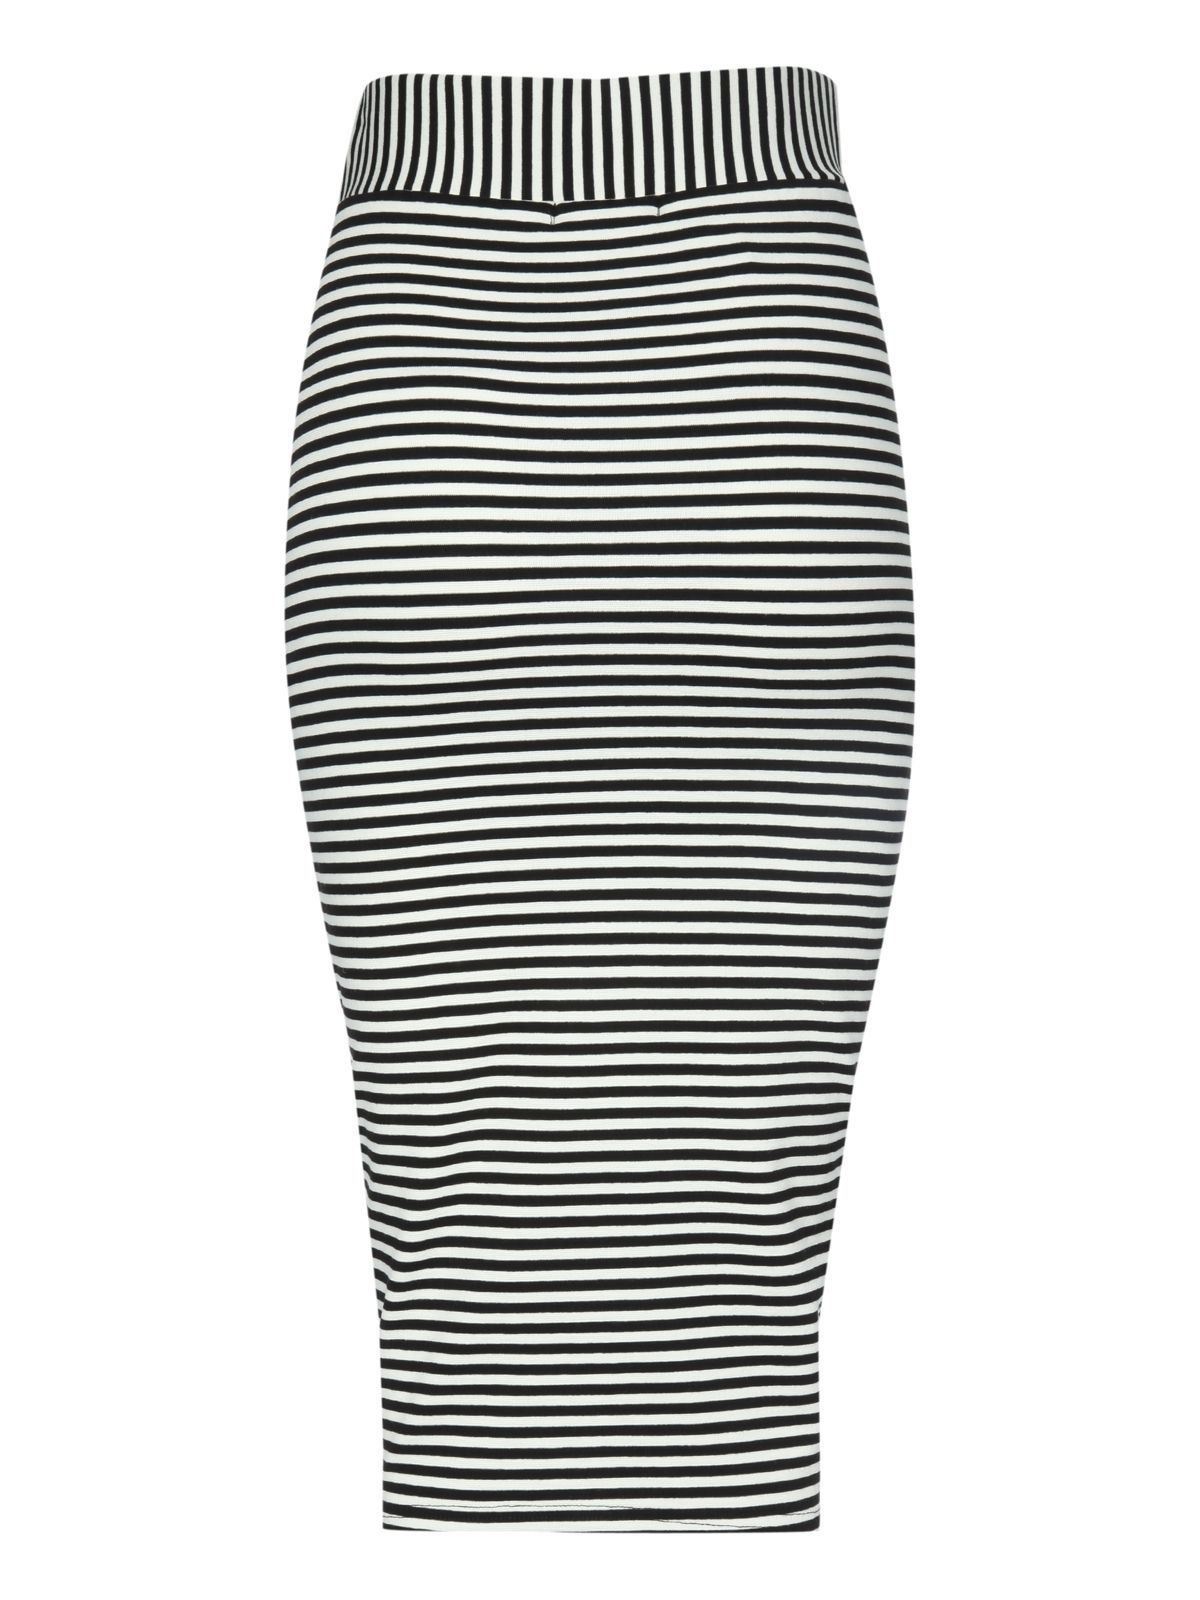 Cut about stripe skirt